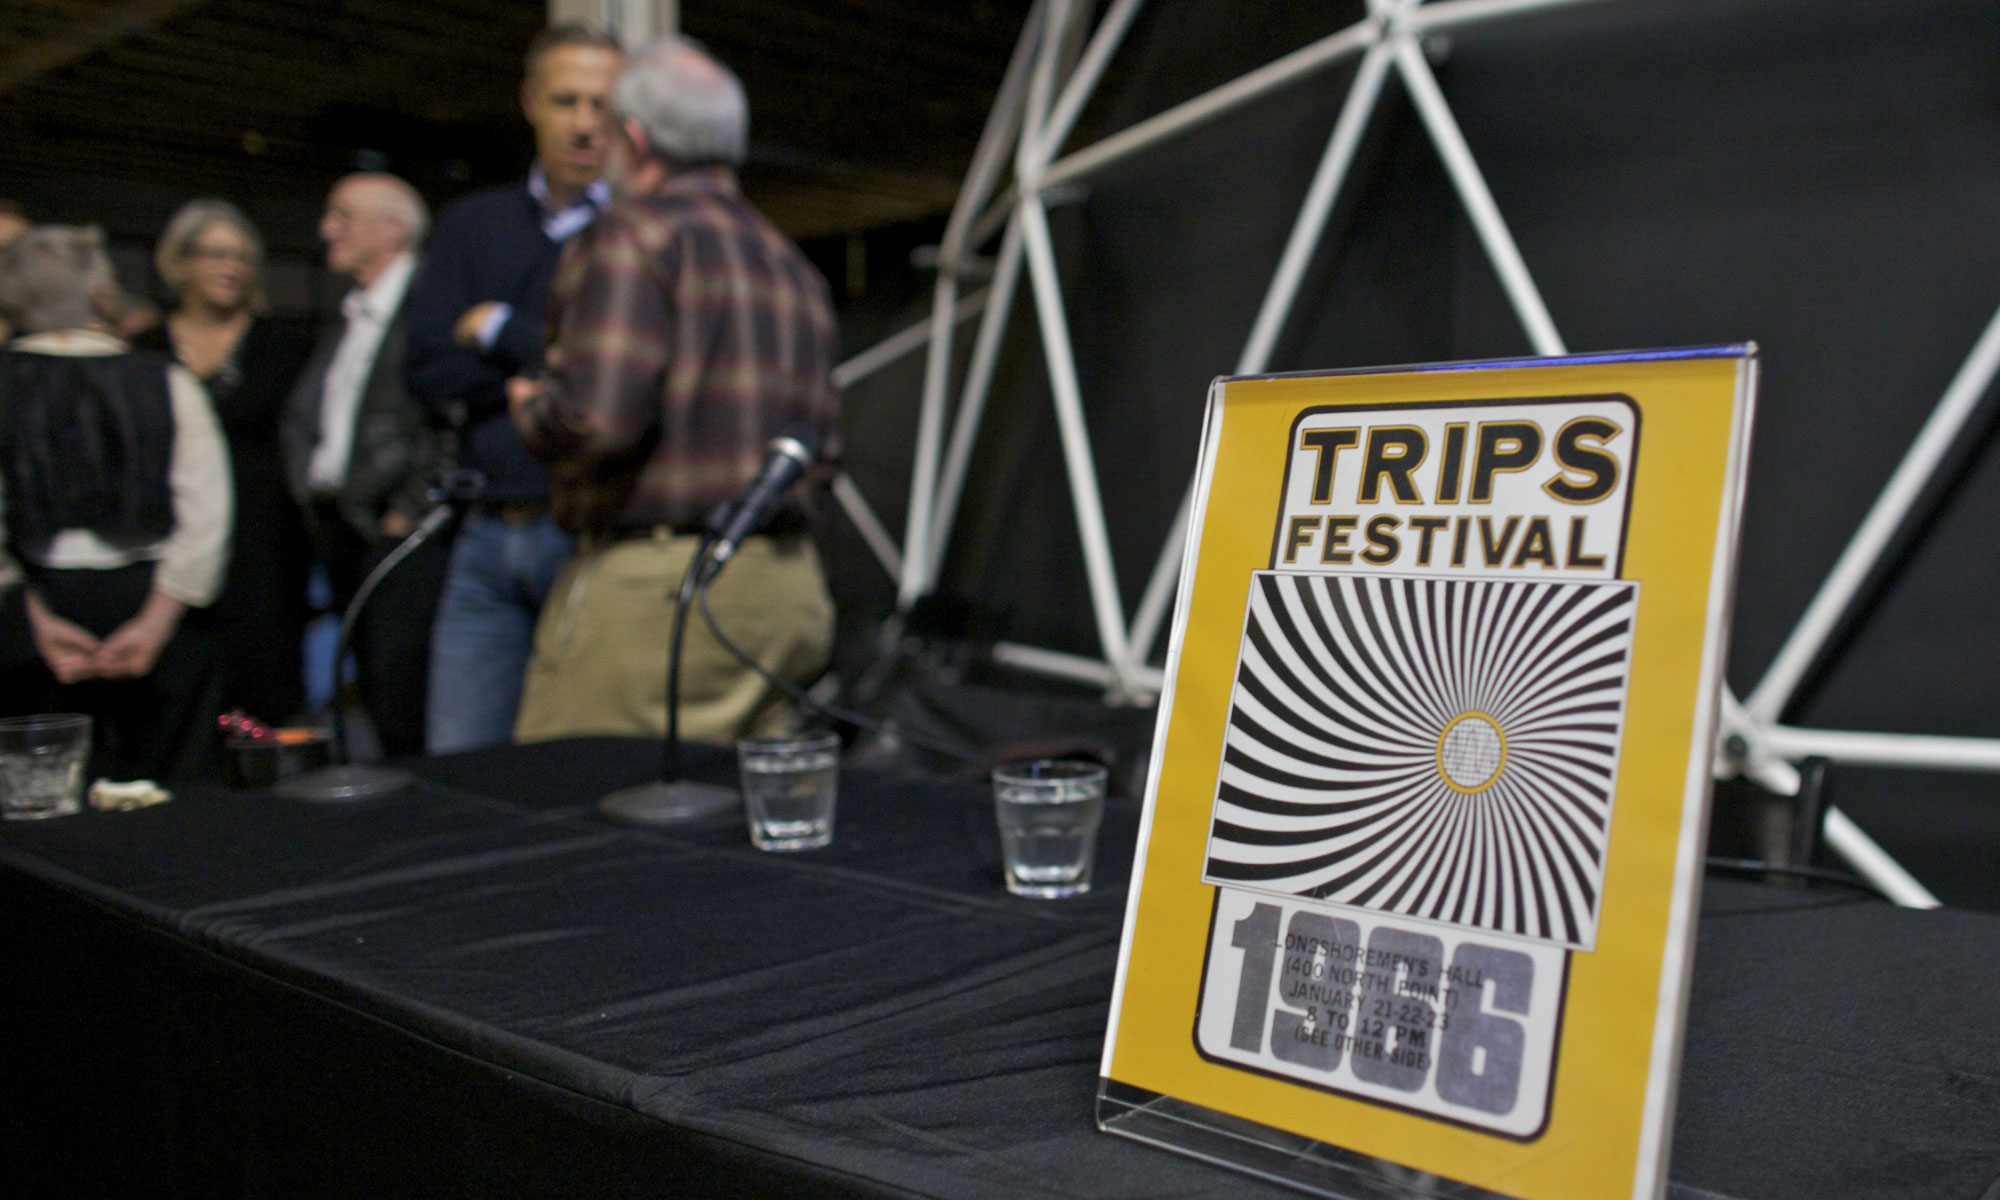 The Trips Festival 50th Anniversary